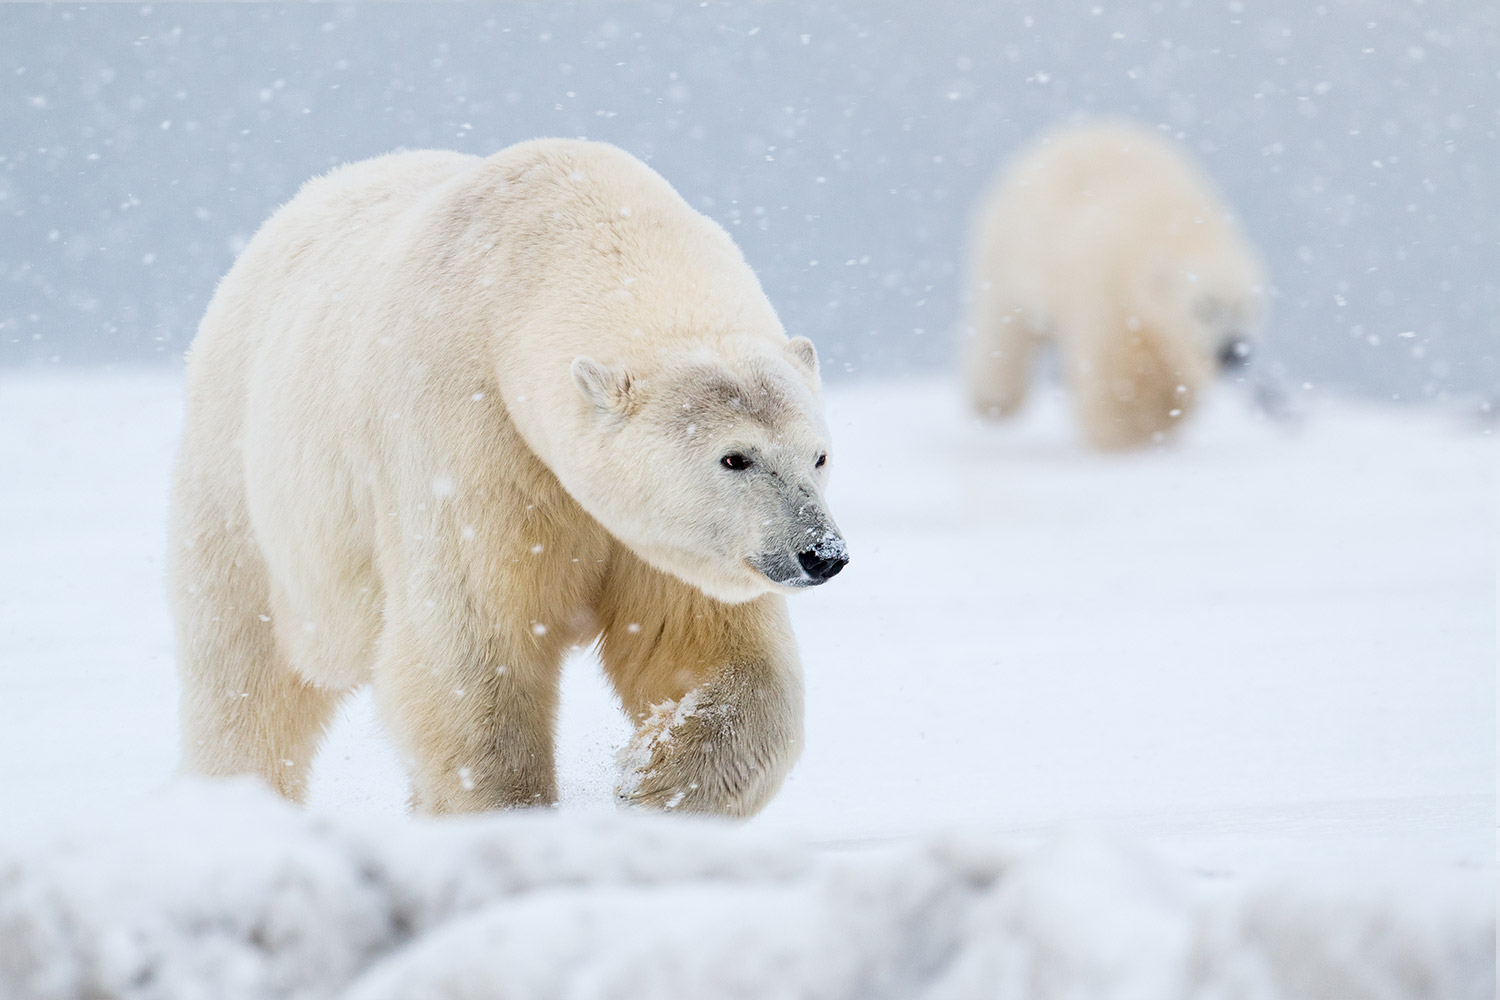 two polar bears in the snow